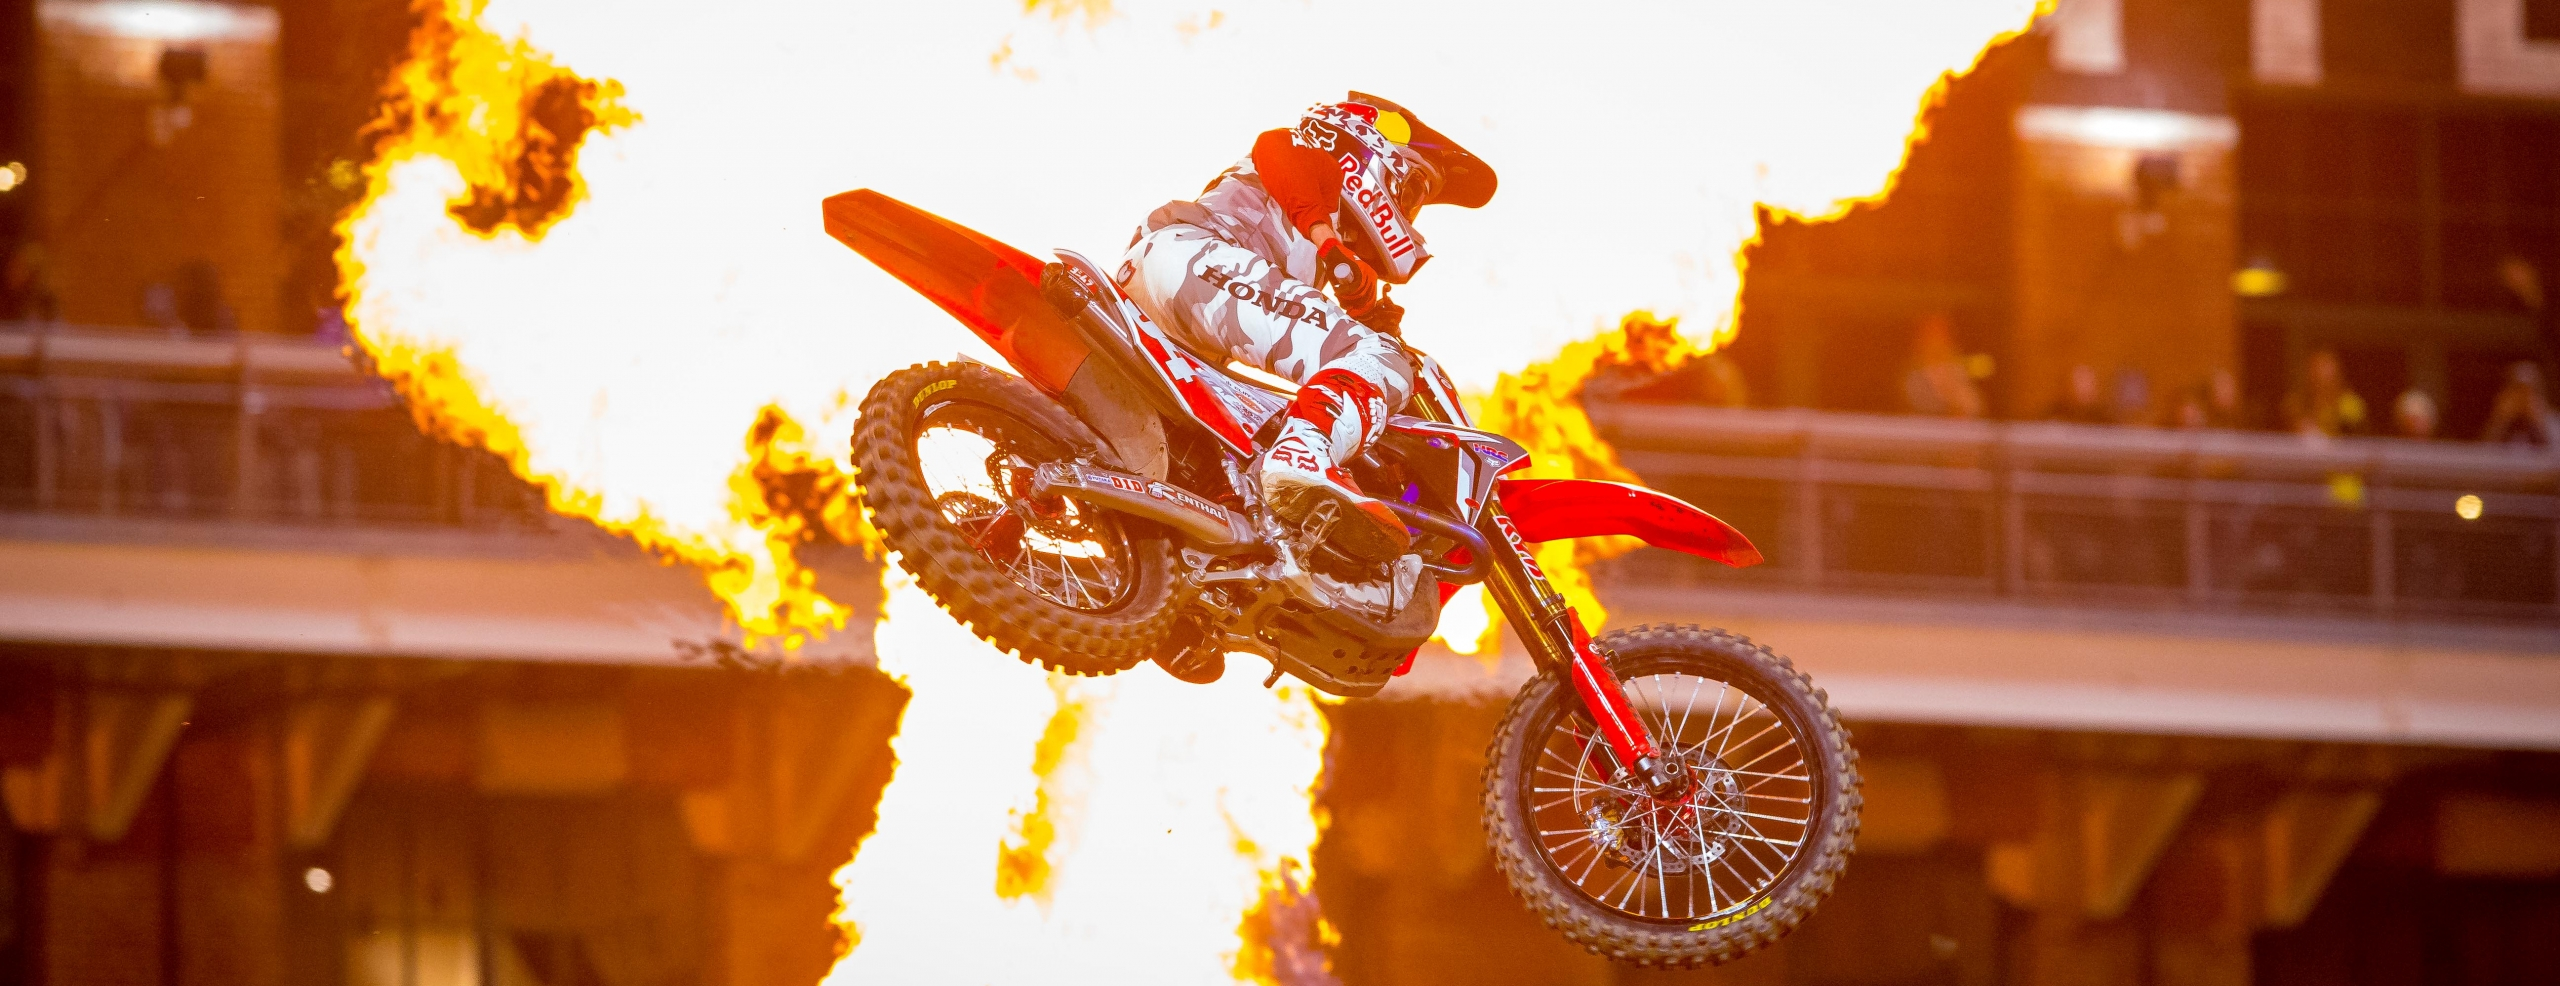 Roczen Makes it Two for Two at San Diego Supercross